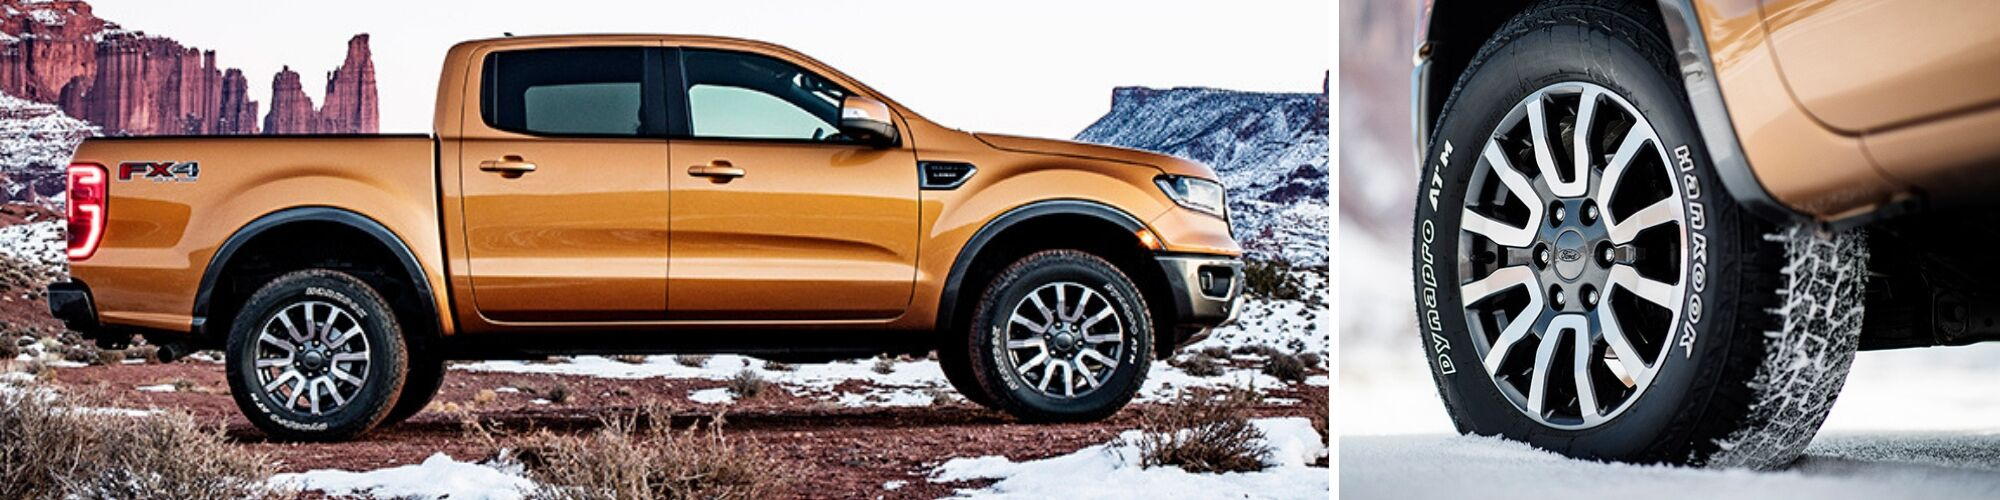 2019 ford ranger side view and wheel detail